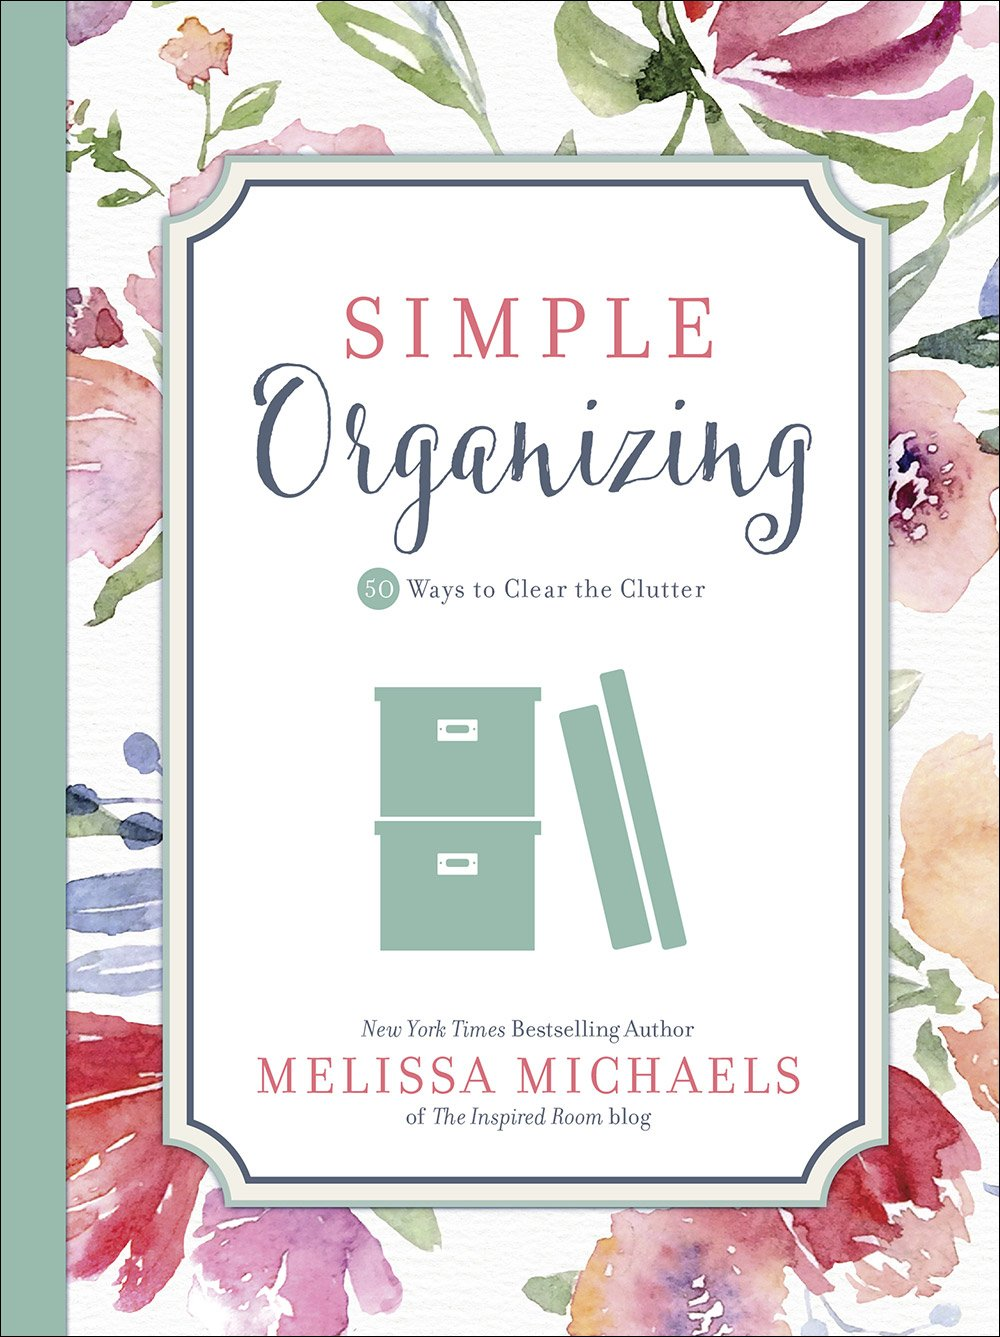 Simple Organizing: 50 Ways to Clear the Clutter (Inspired Ideas) by Harvest House Publishers (Image #1)